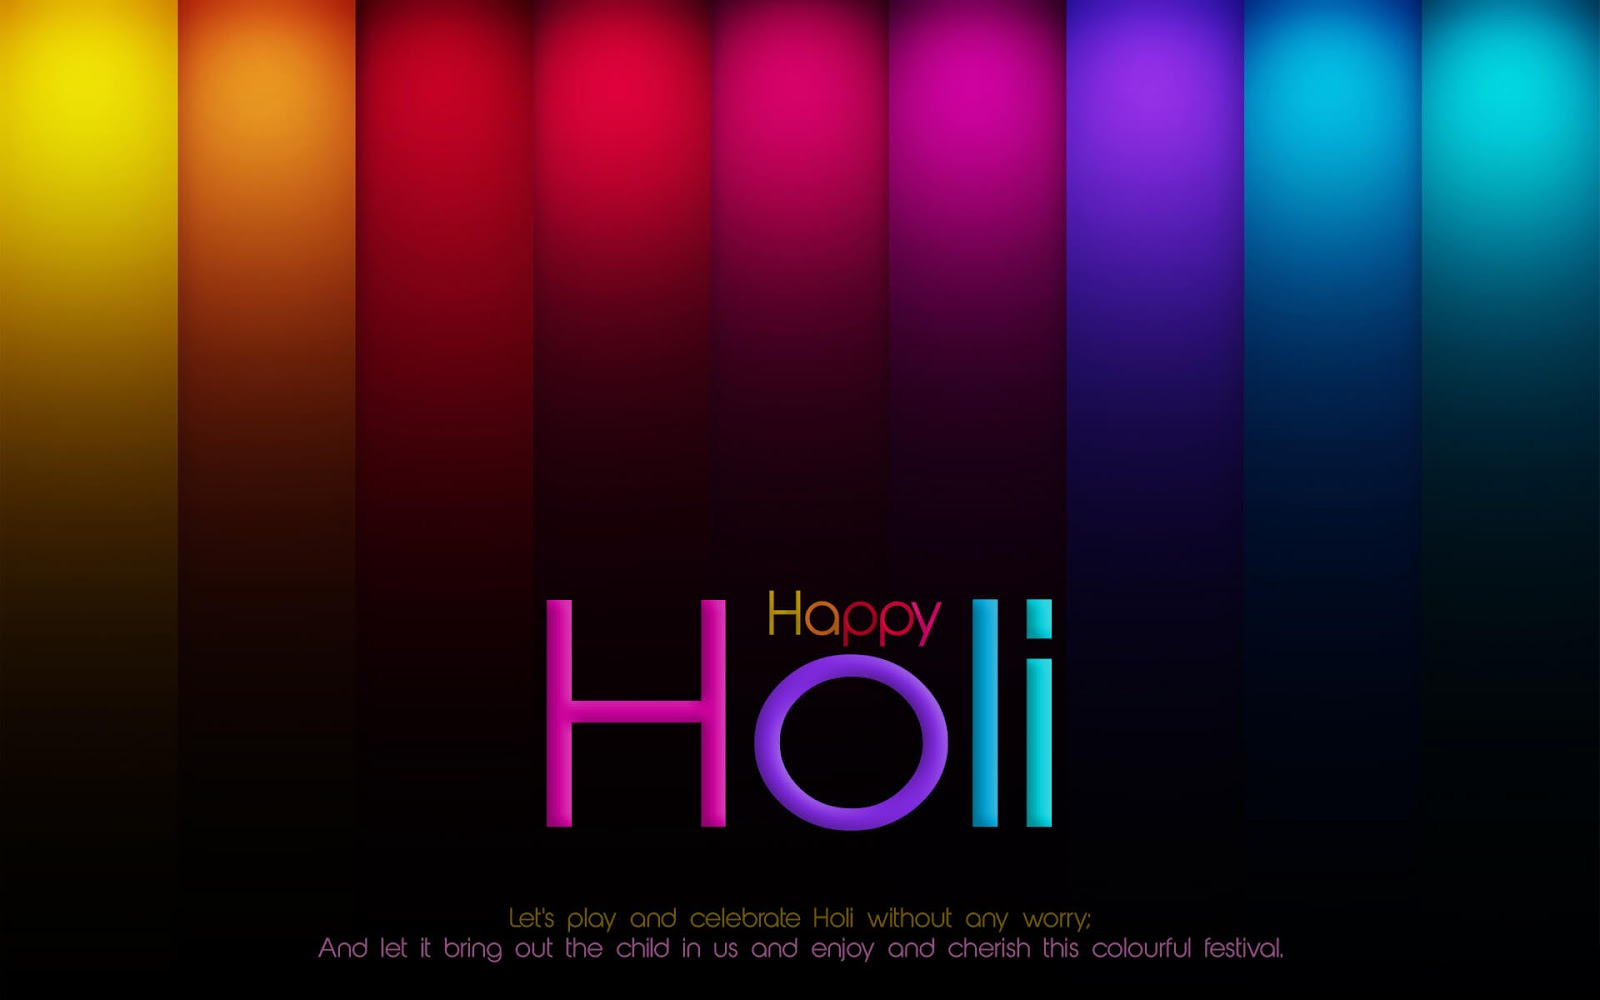 Happy Holi Images For Facebook Free Download 2018